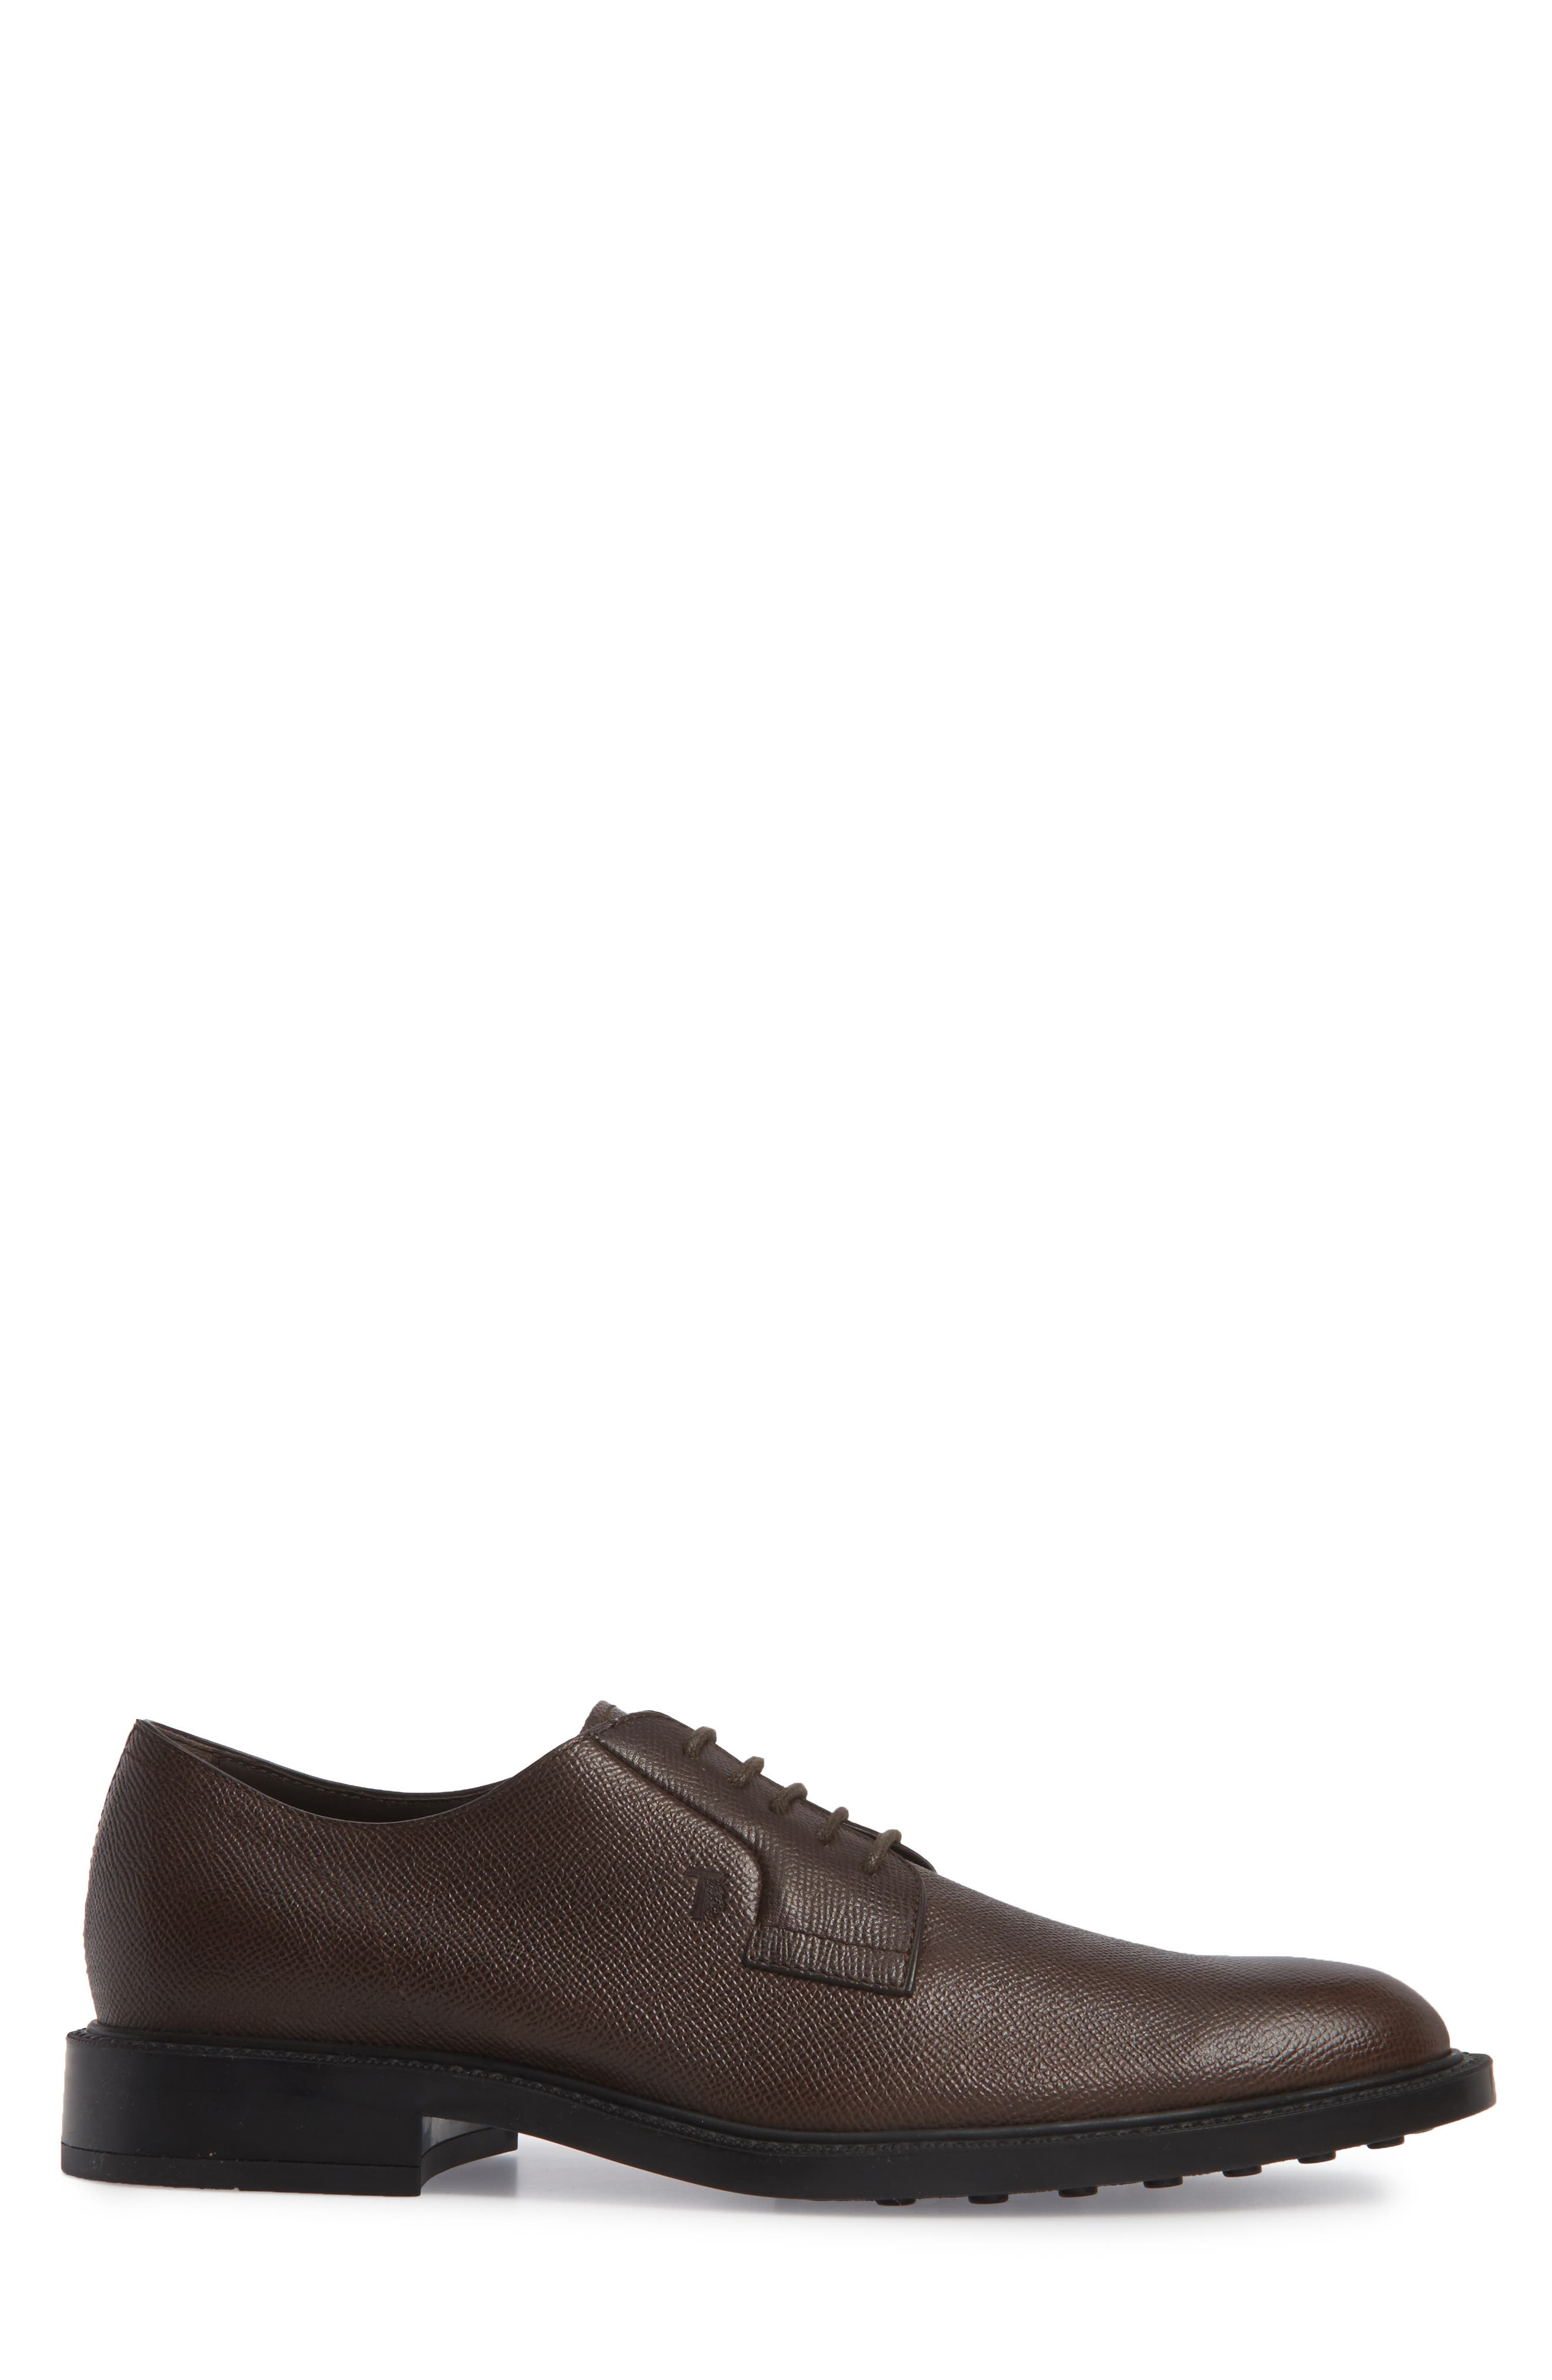 Clean Plain Toe Derby,                             Alternate thumbnail 3, color,                             Brown Textured Leather